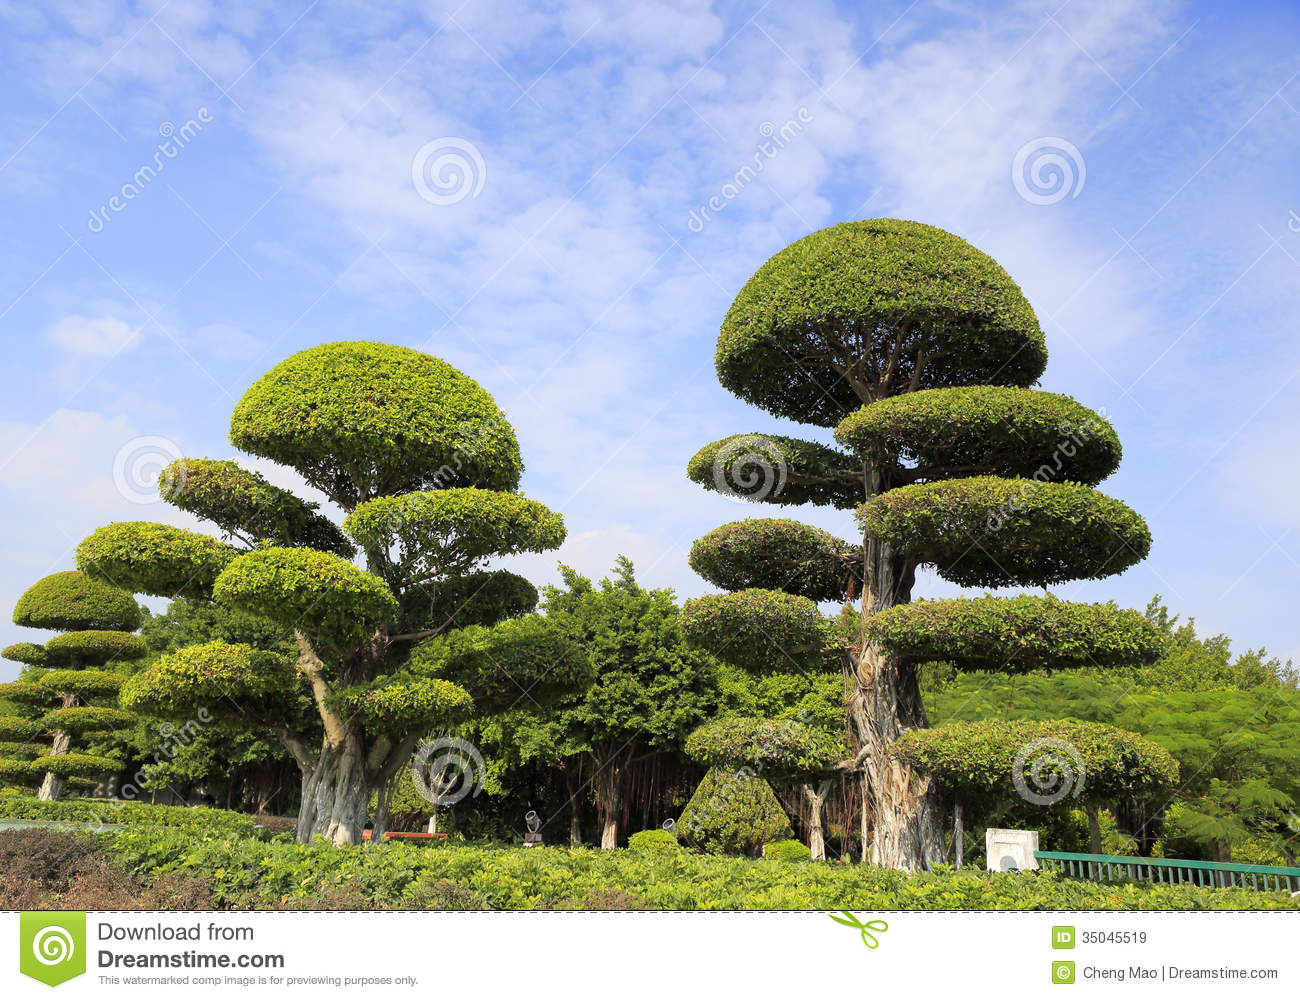 Royalty Free Stock Images Trimmed Banyan Tree Under Blue Sky Image35045519 on Tropical Ornamental Trees